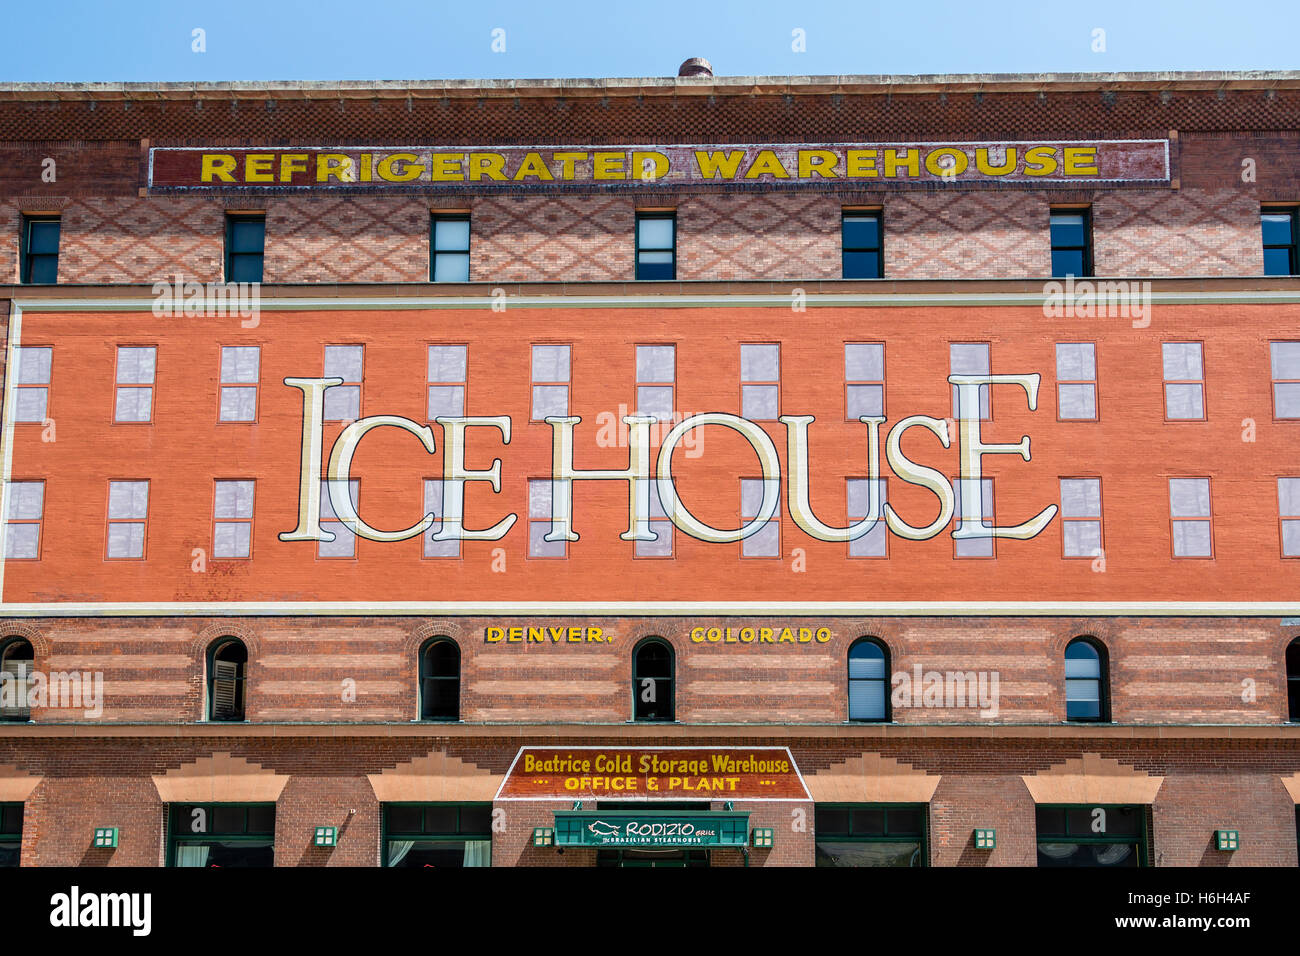 The Icehouse an old refrigerated warehouse in Denver Colorado - Stock Image & Refrigerated Warehouse Stock Photos u0026 Refrigerated Warehouse Stock ...